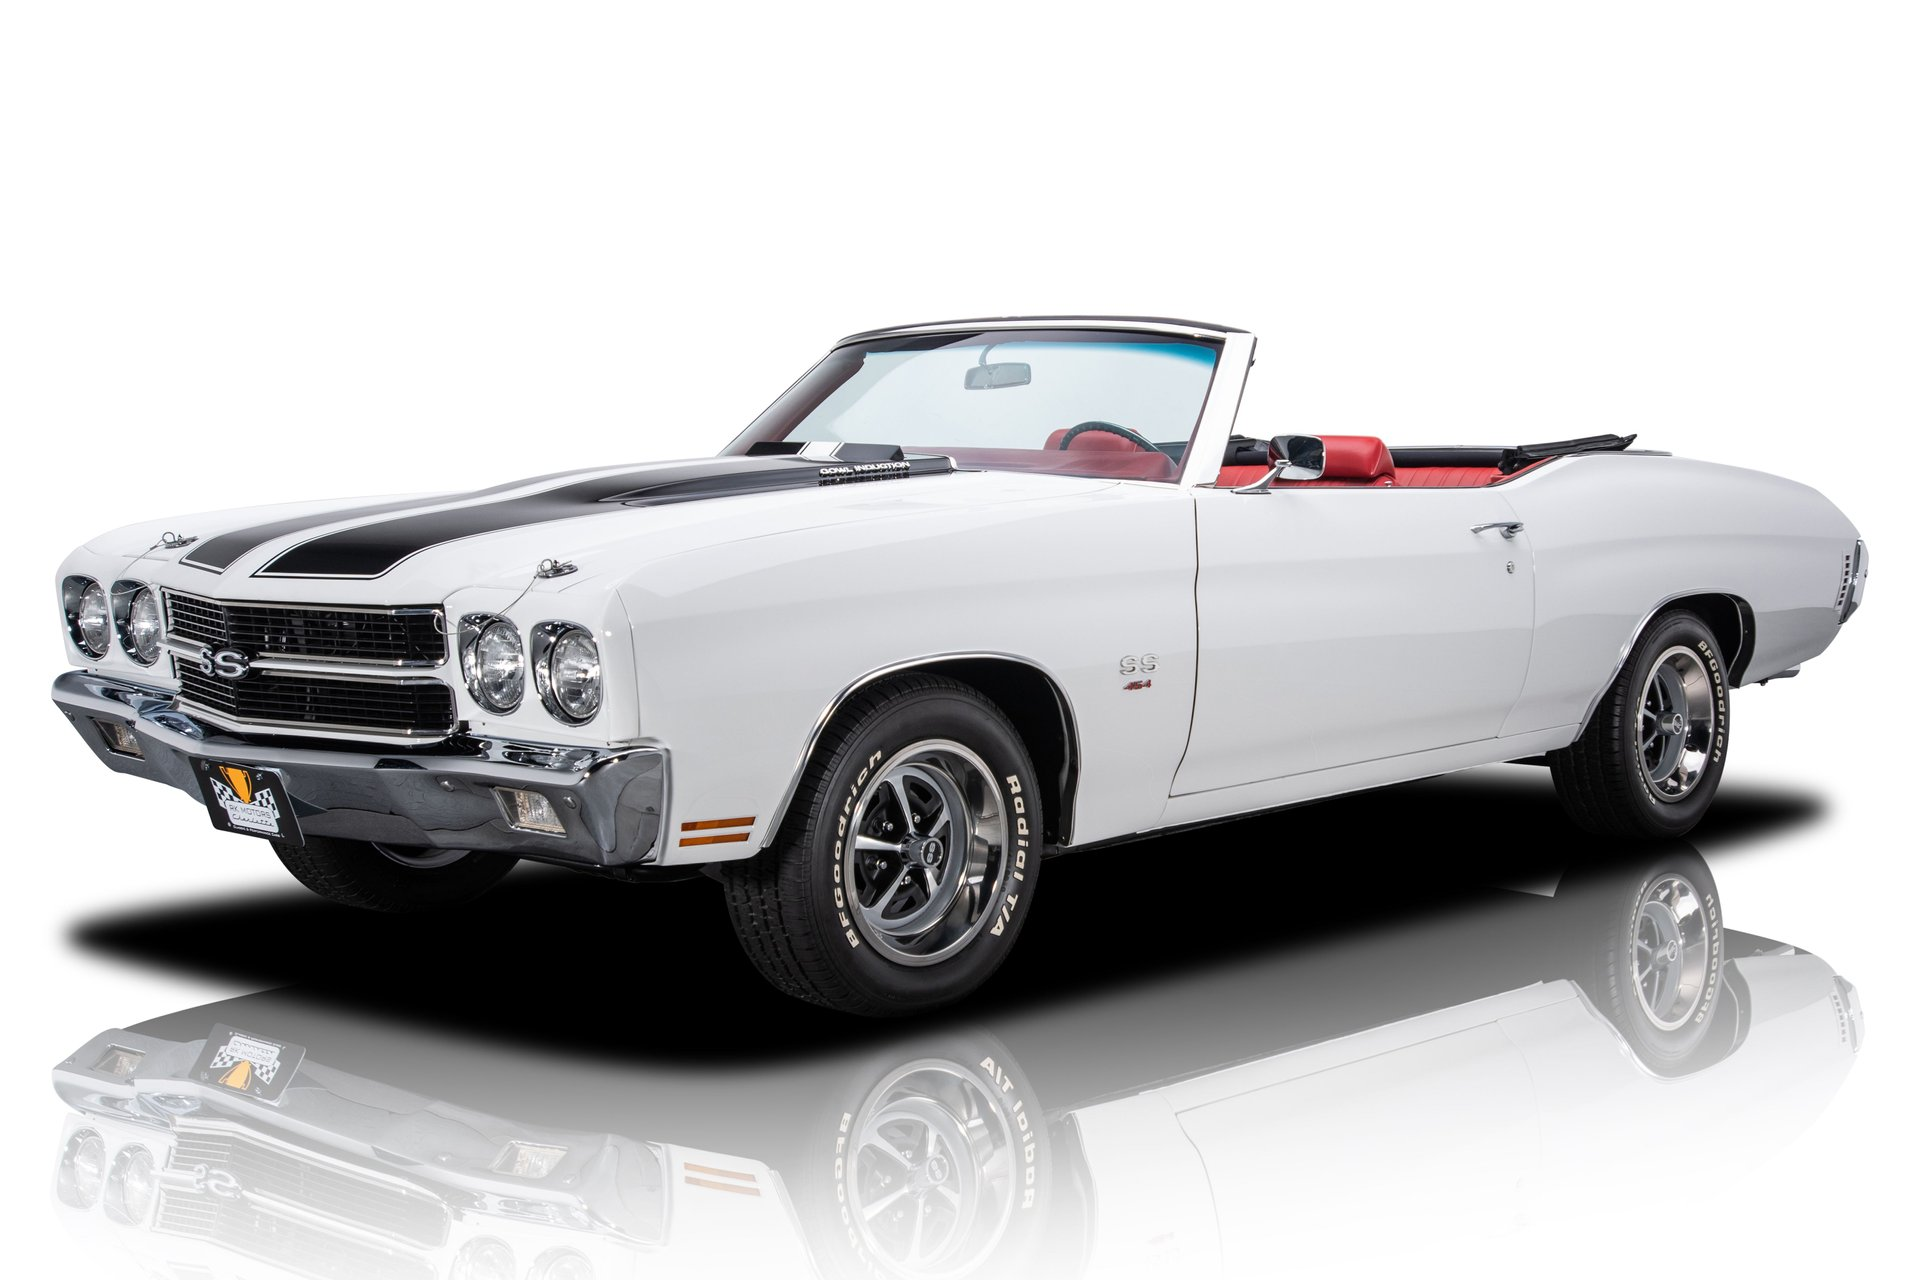 1970 chevrolet chevelle ss convertible